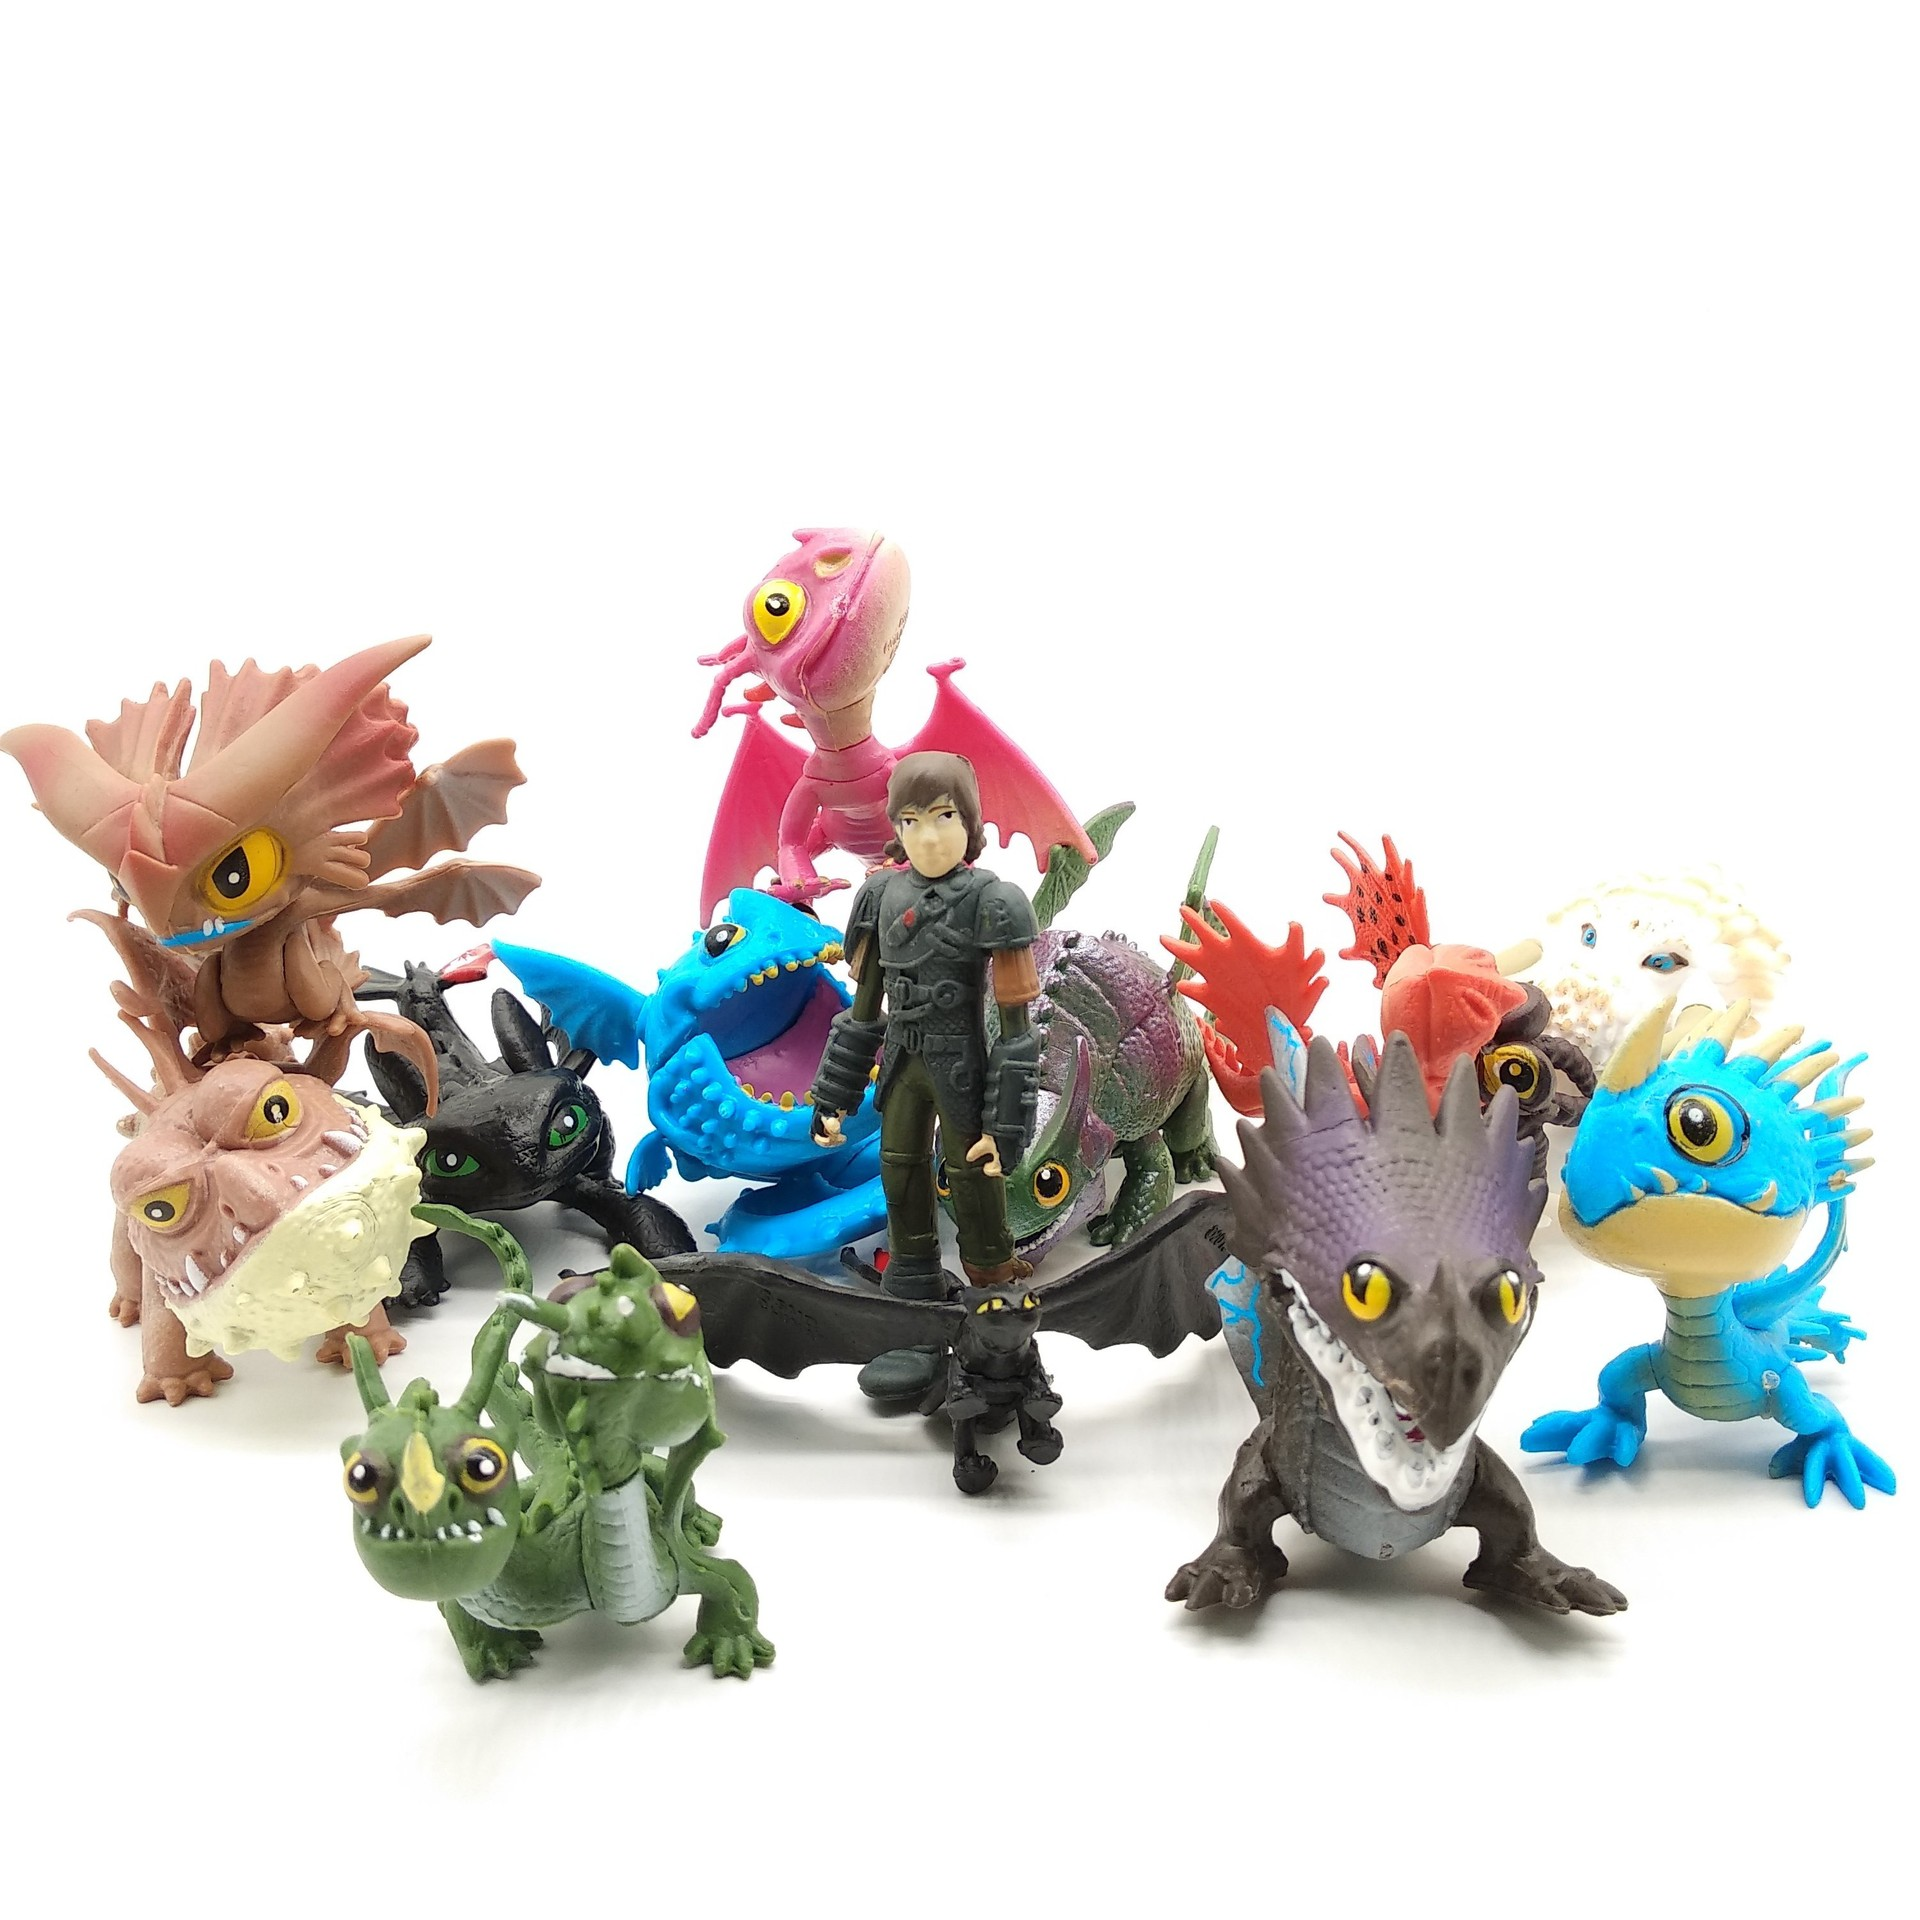 13 Pcs/set How To Train Your Dragon 2 Figures Night Fury Toothless Skull Gronckle Deadly Nadder Night Dragon Action Figures Toys image